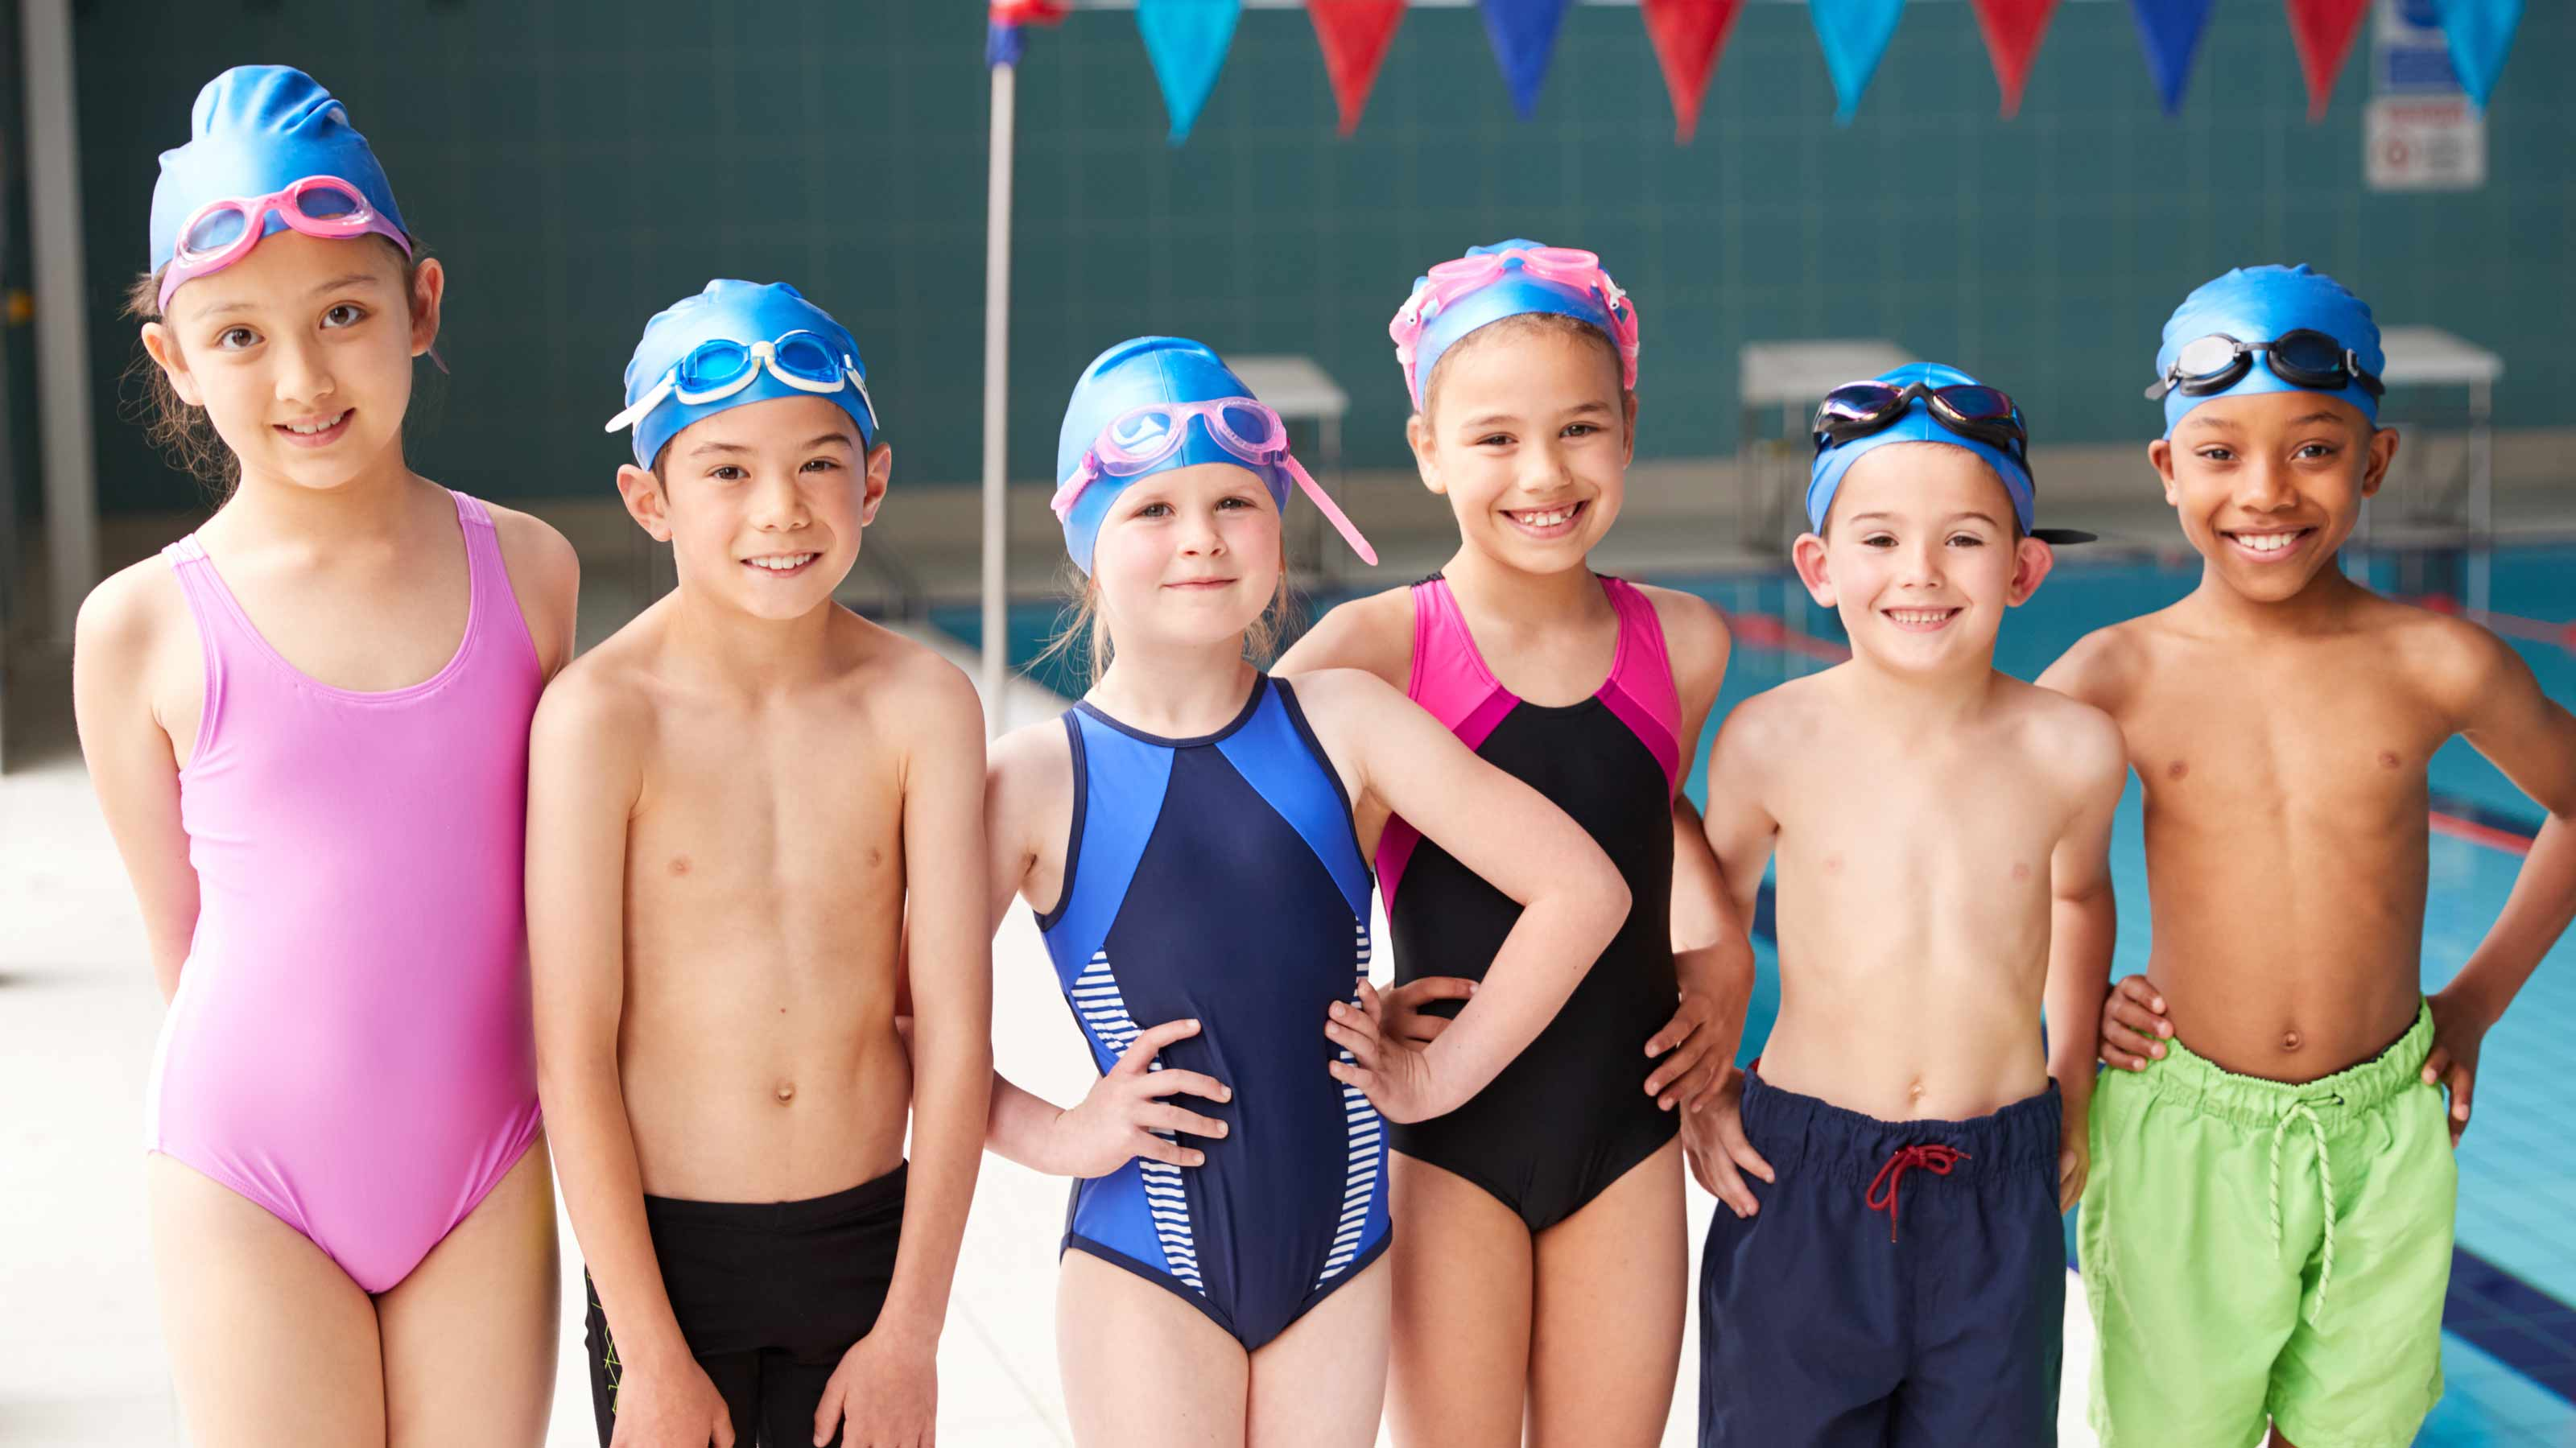 pupils lined up ready for swim lessons